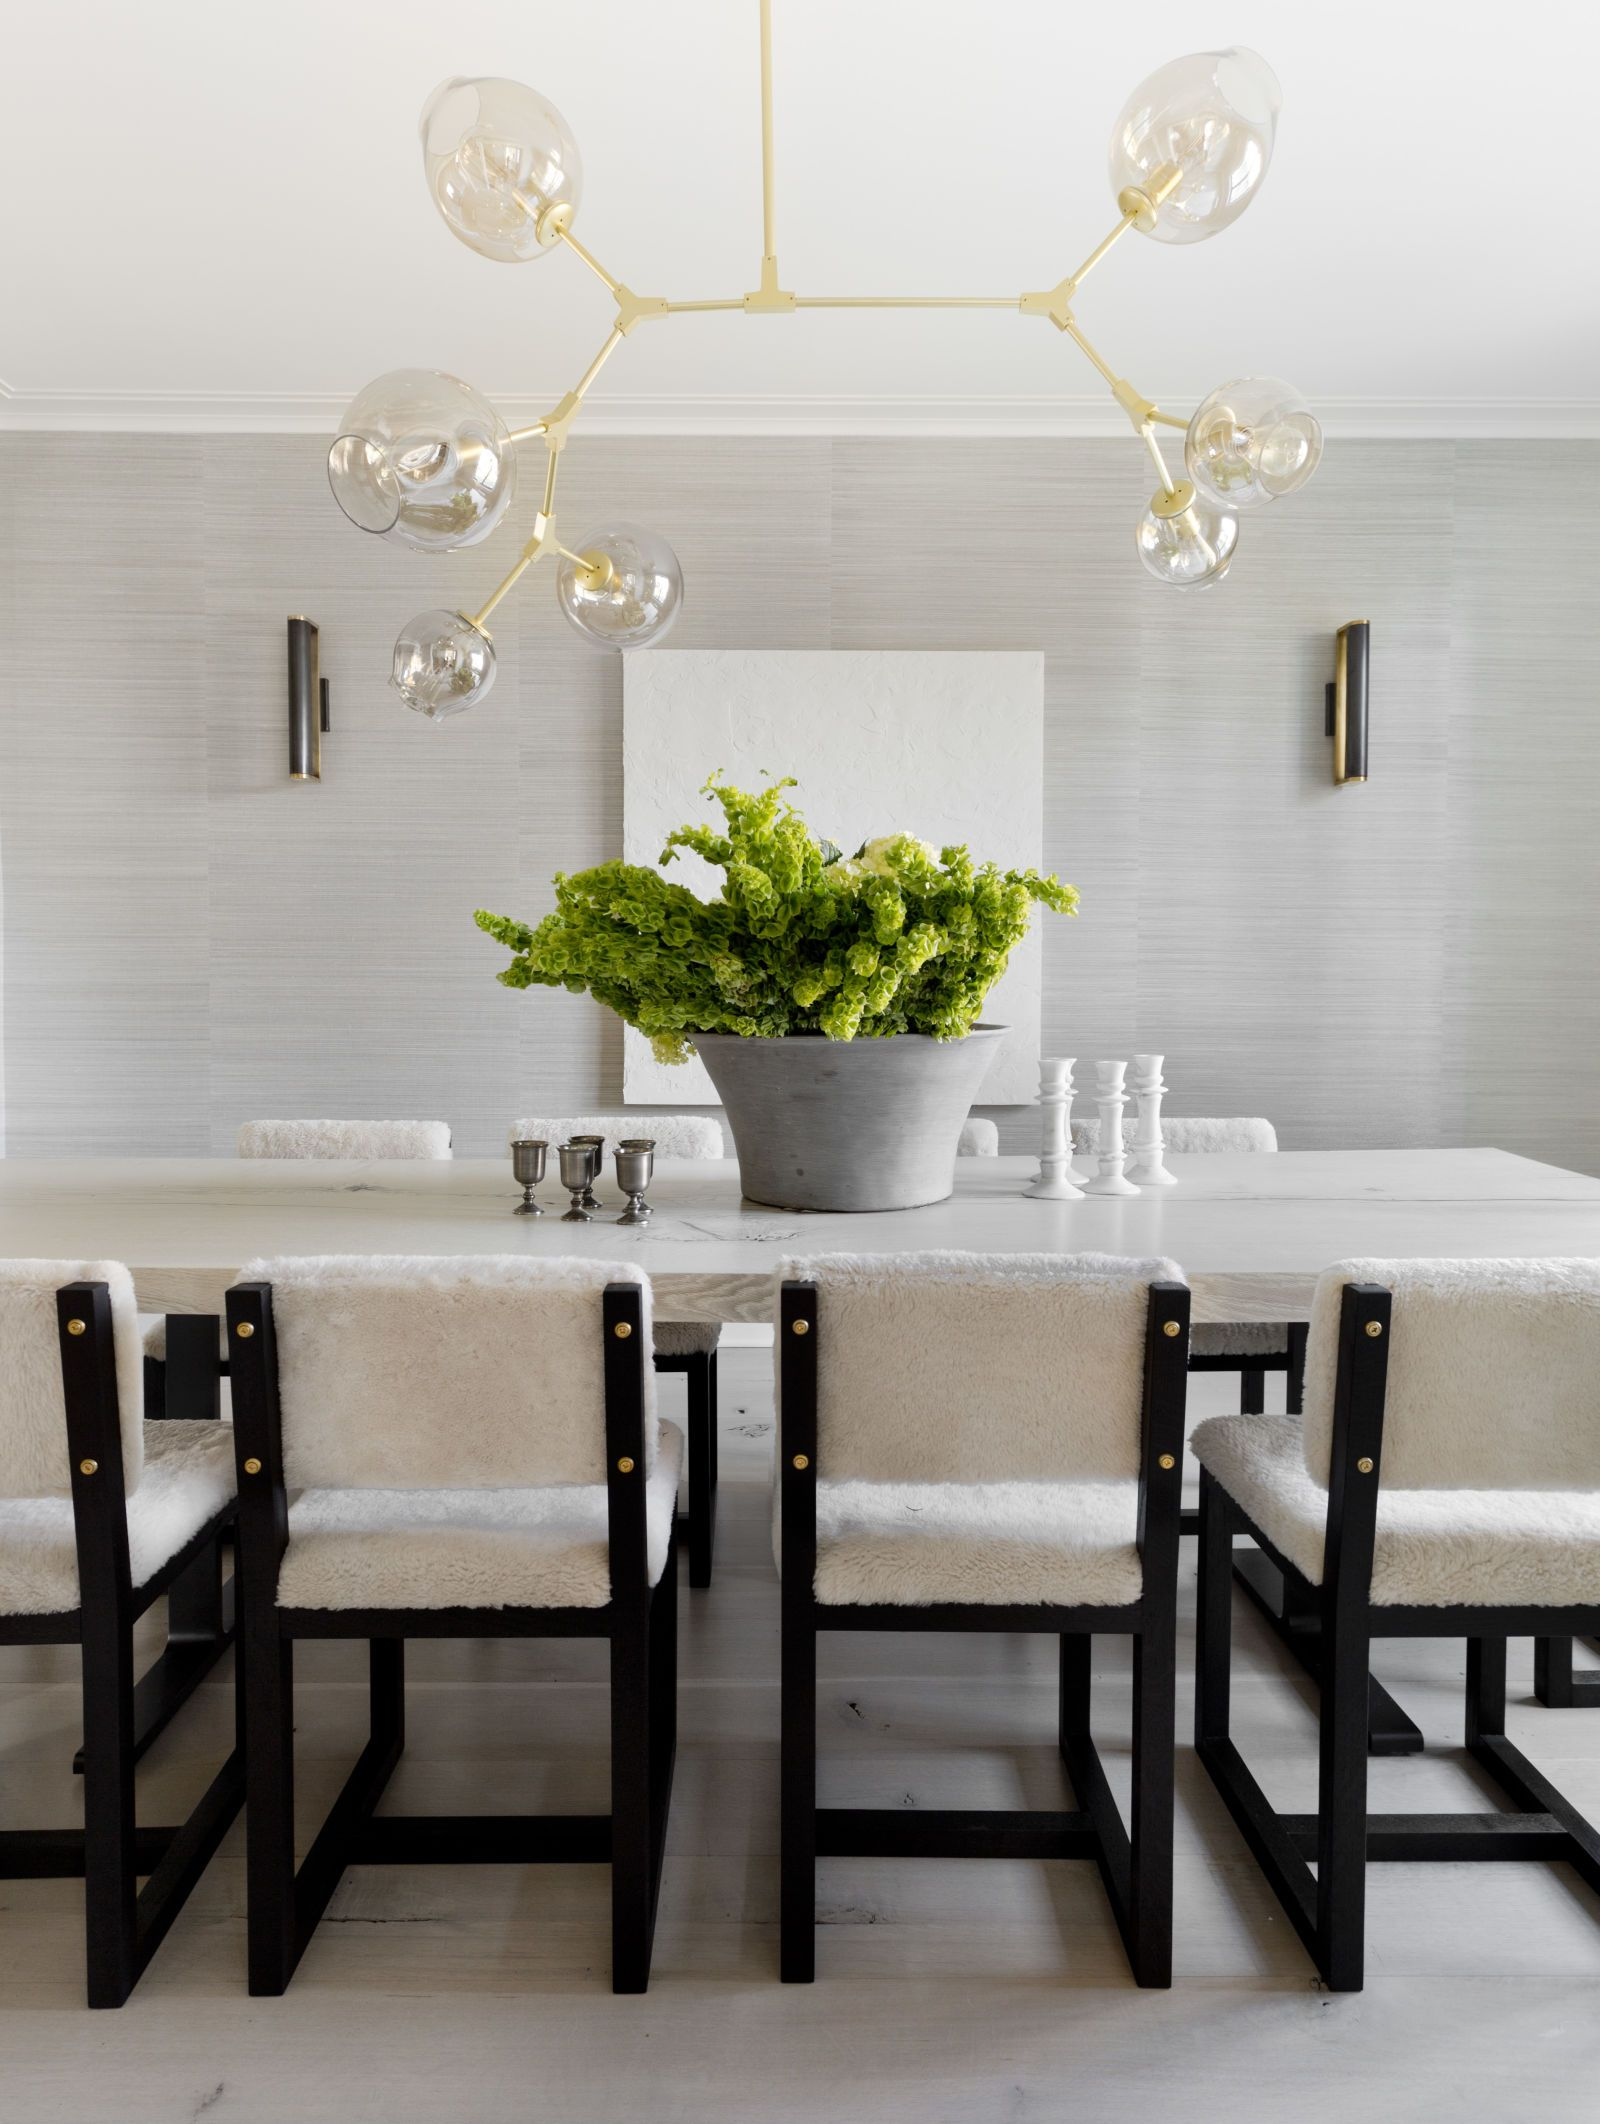 Flat surfaces in dining rooms provide the